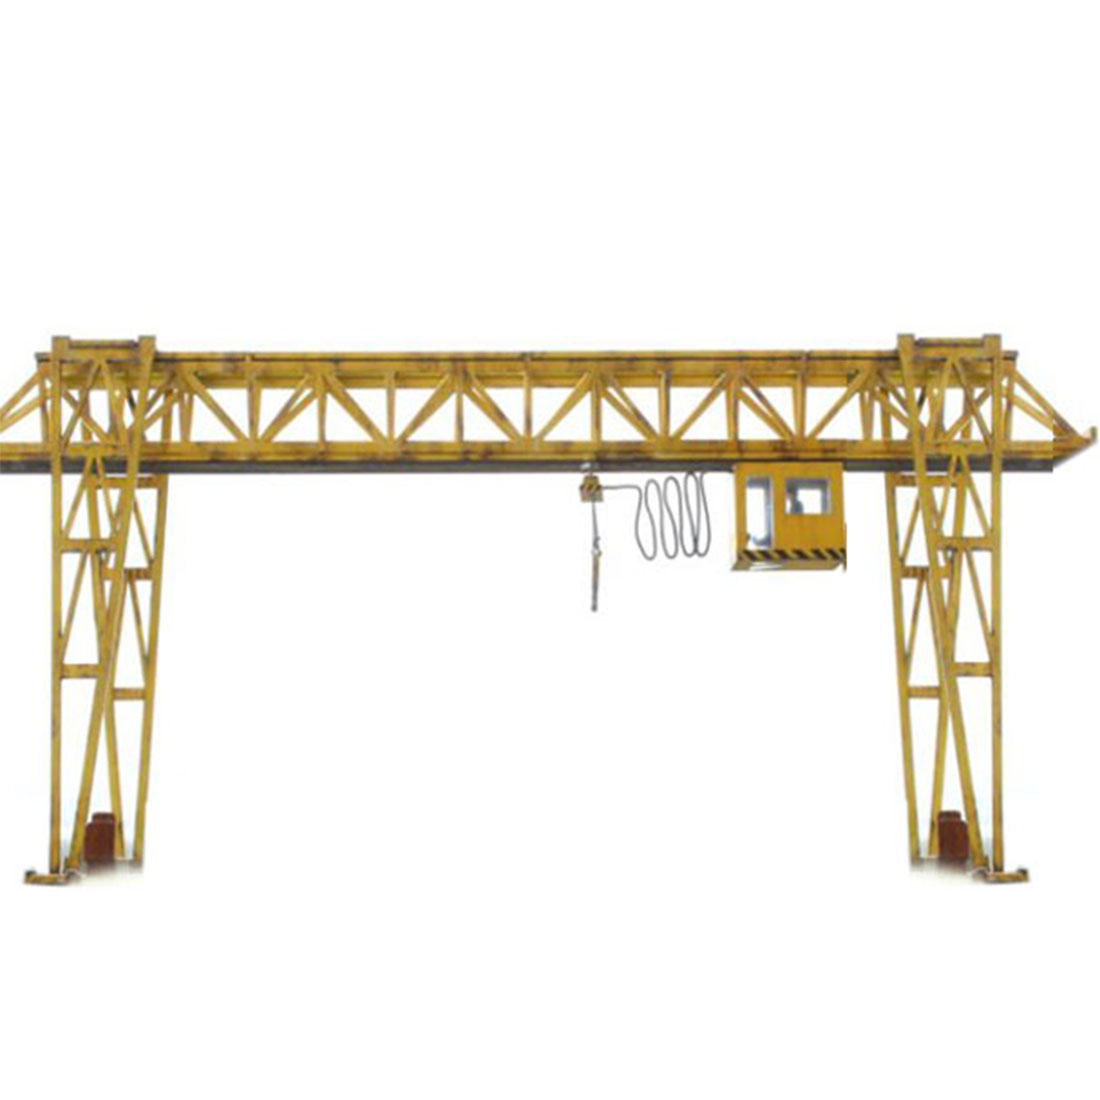 1:87 HO Scale Miniature E5 Crane Model Train Architectural Scene Sand Table Railway Accessories Model Building Kits - Grey